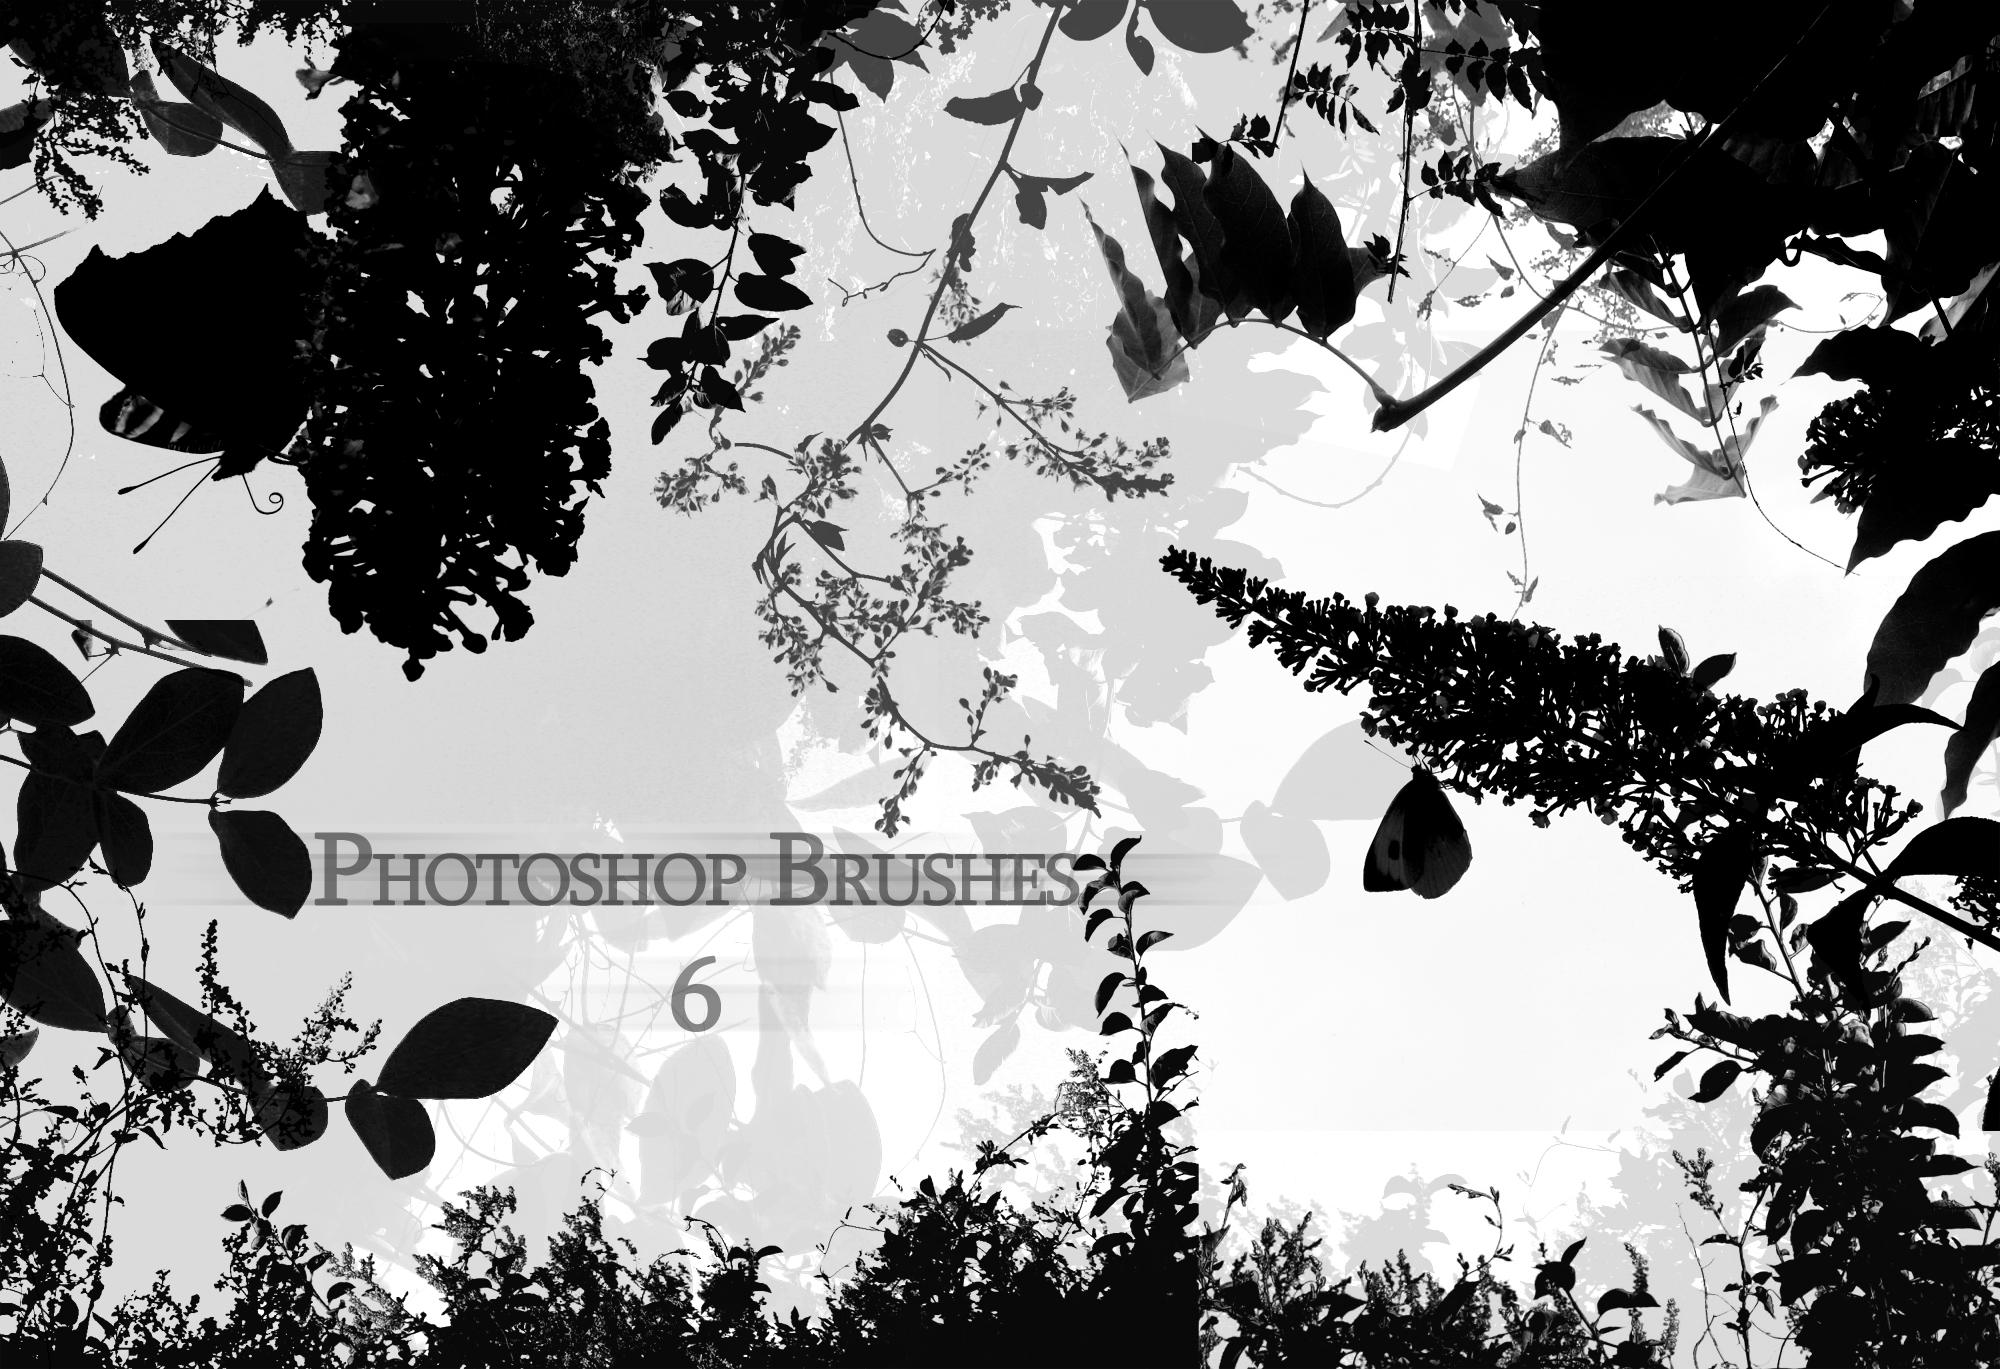 photoshop brushes 6 by greenday862